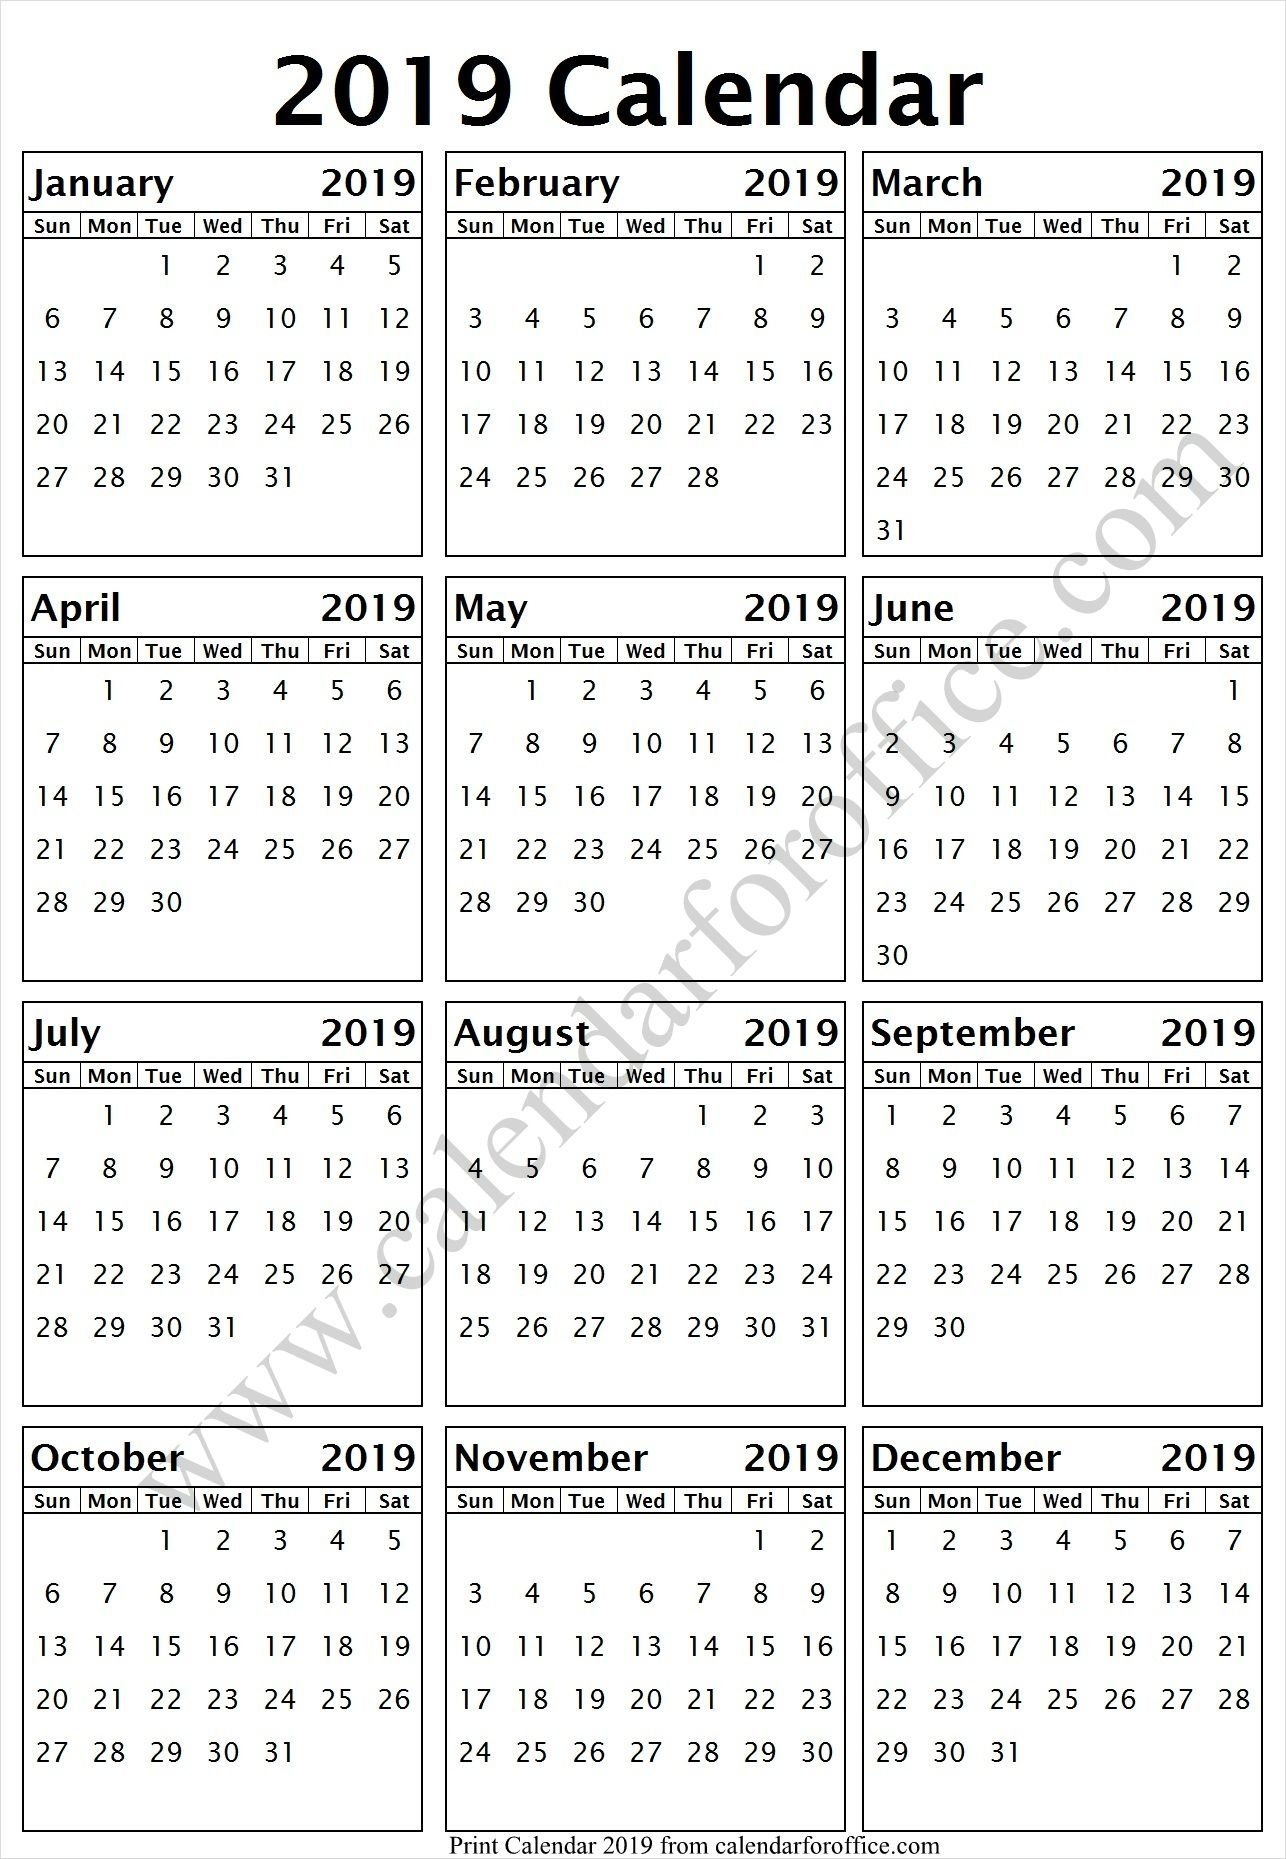 Day Calendar 2019 Sri Lanka | 2019 Yearly Calendar | Pinterest Calendar 2019 Days